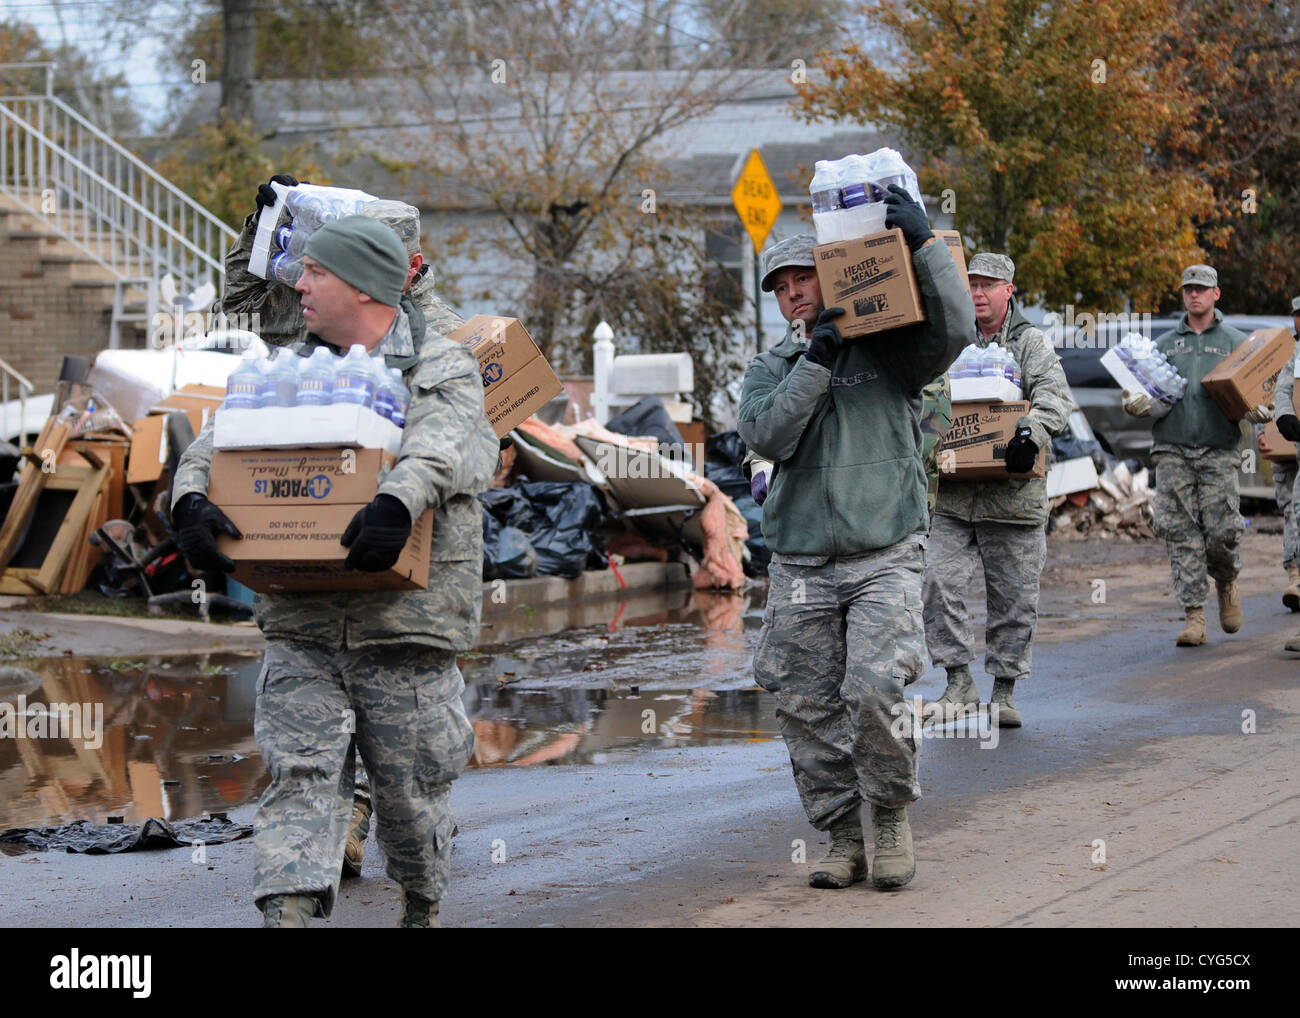 New York Air National Guardsmen deliver emergency food supplies to victims of Hurricane Sandy November 2, 2012 on - Stock Image